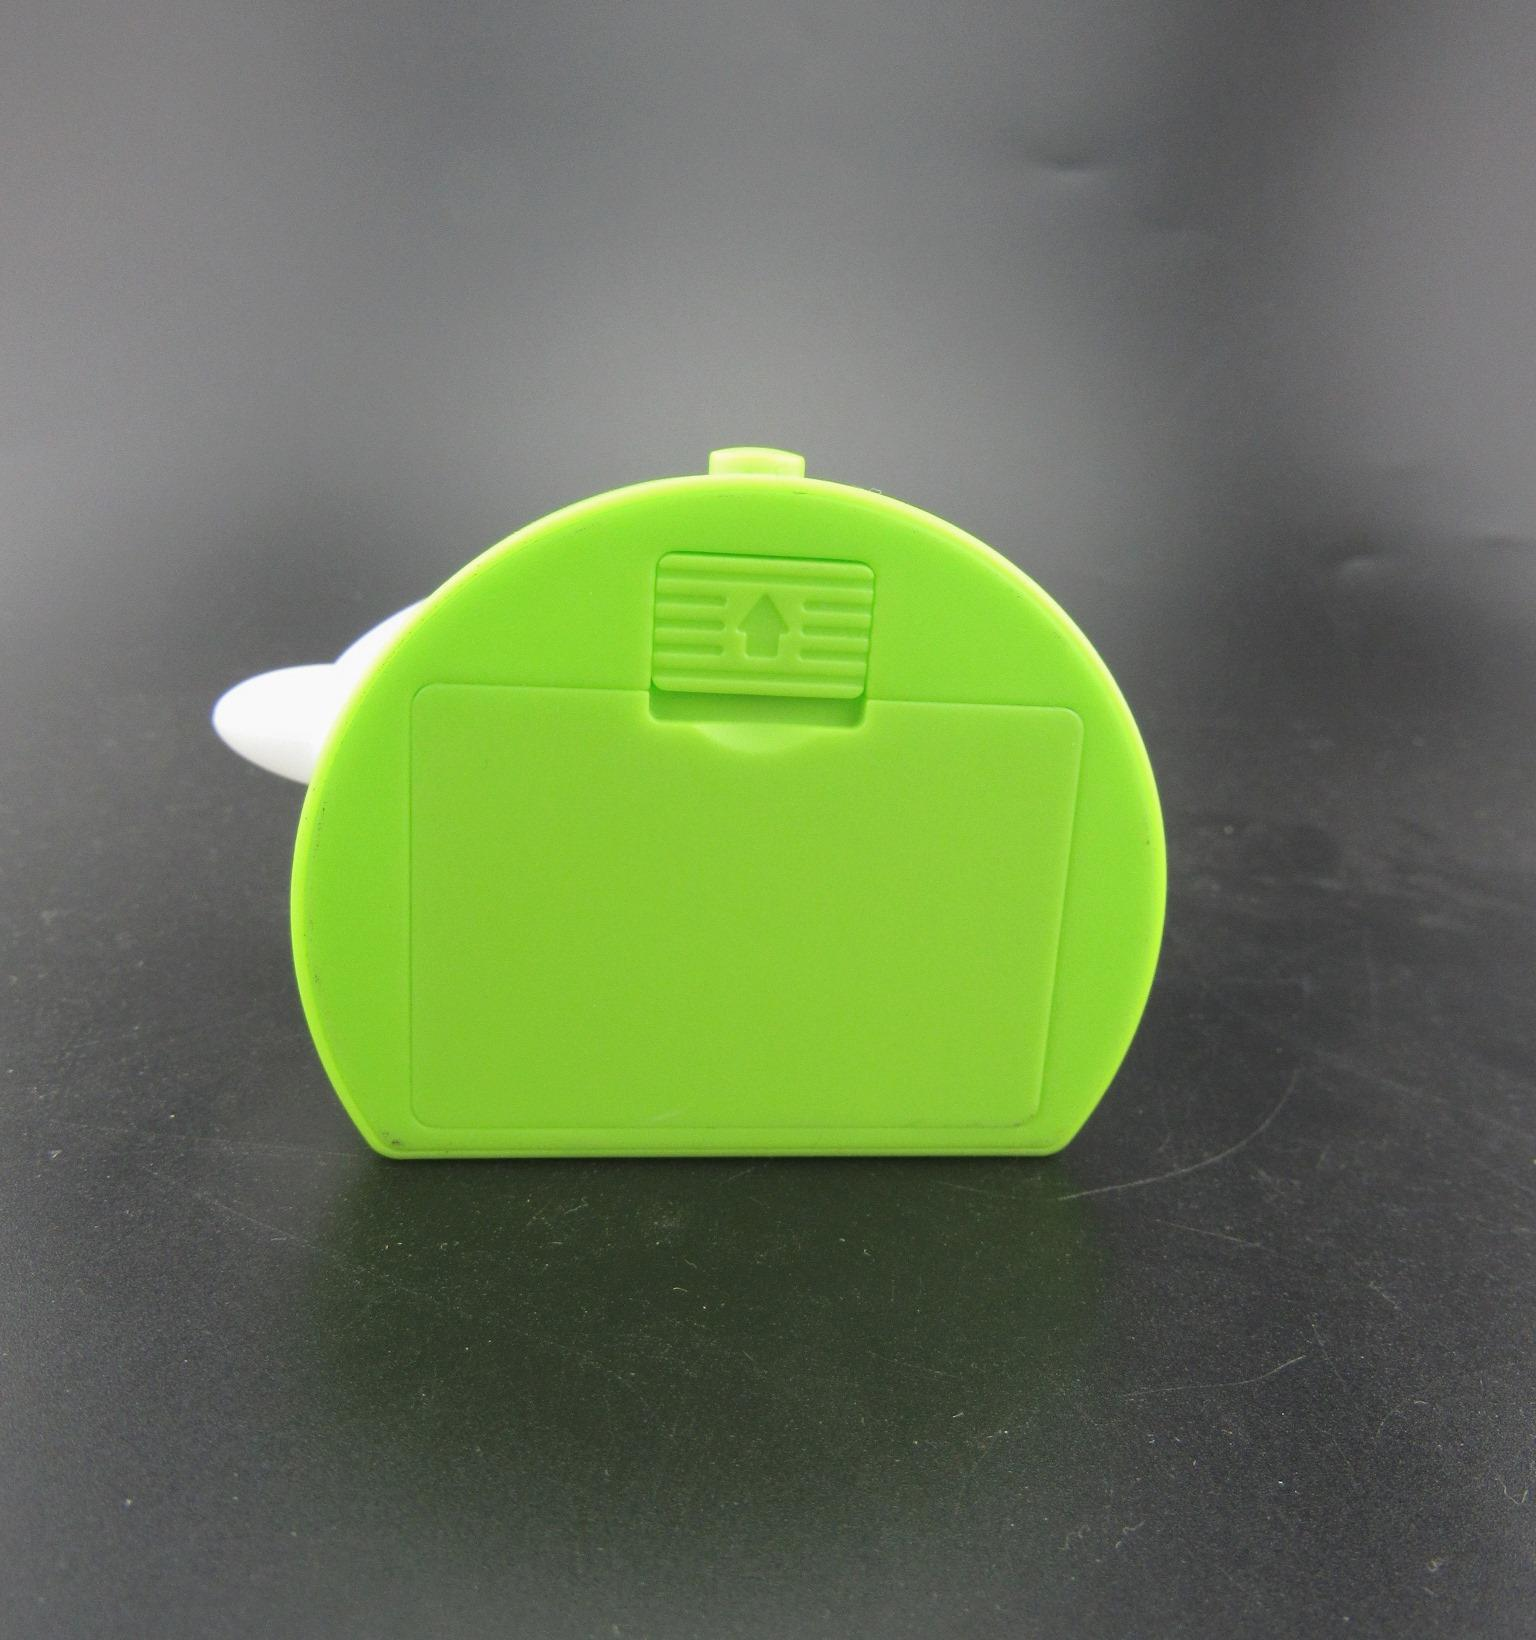 BL701 3A Battery operated nightlight 5